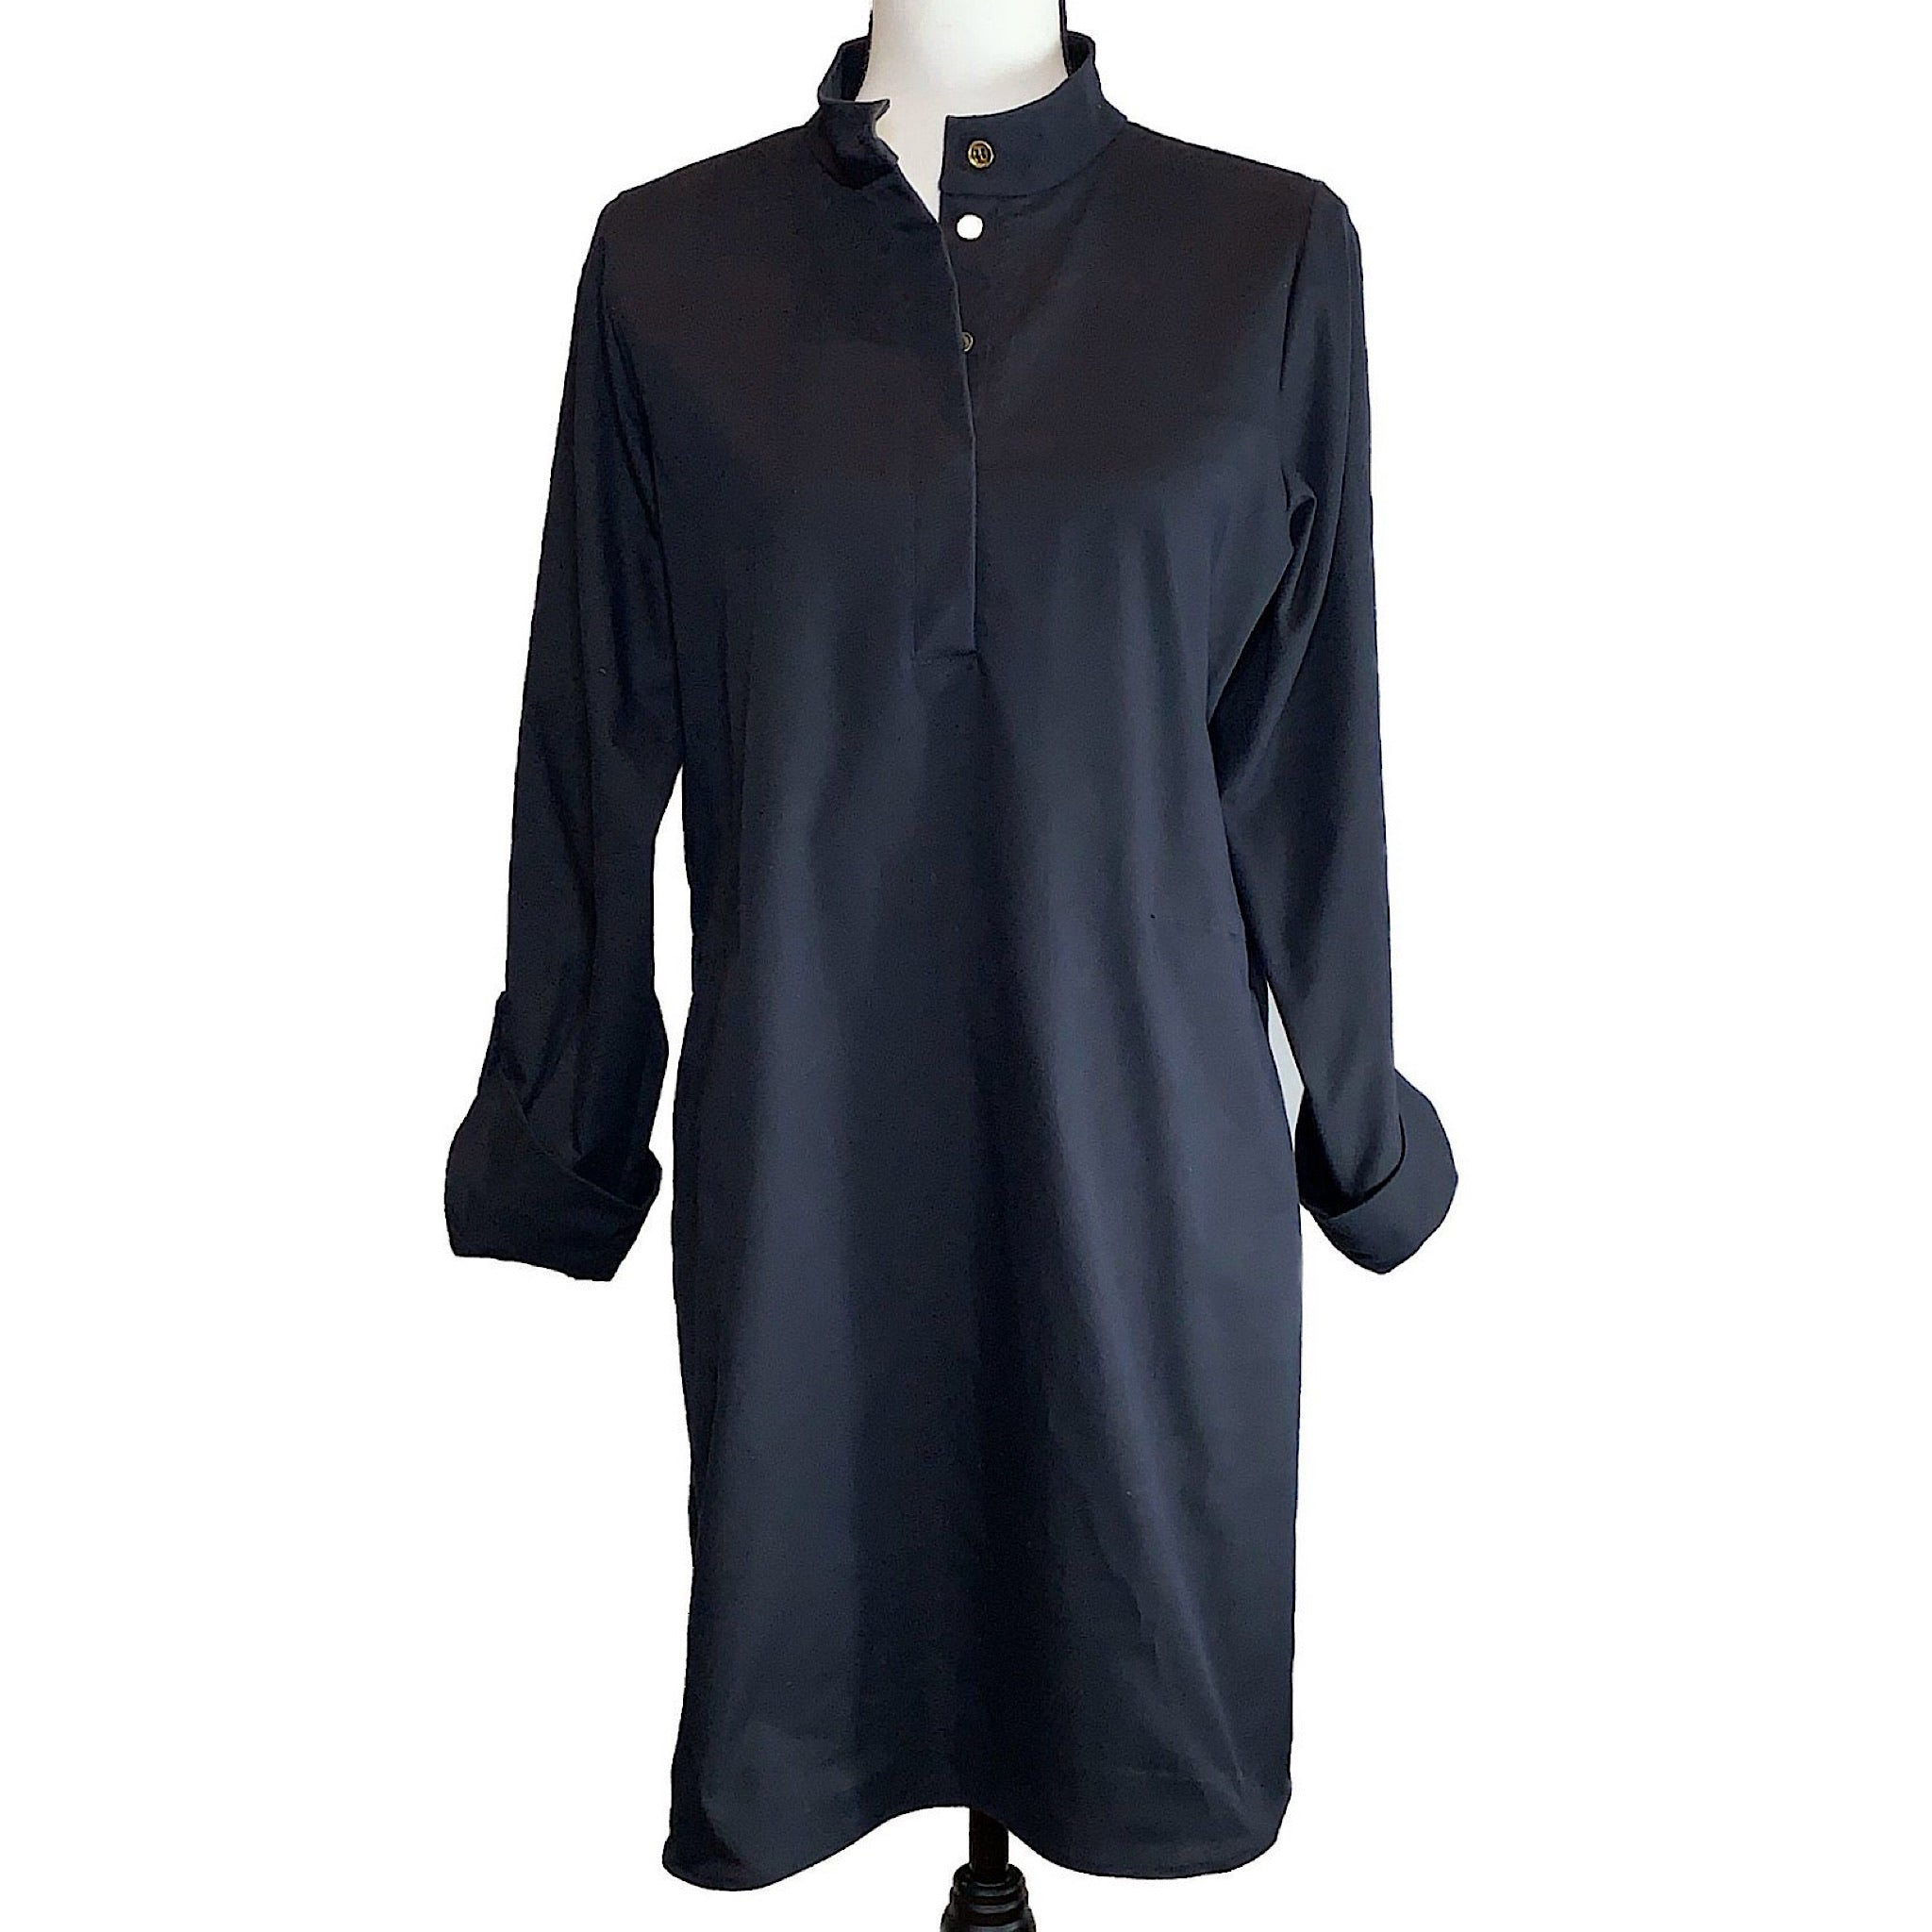 UPF Tunic Dress in UVWeave with Pockets - AMBERNOON